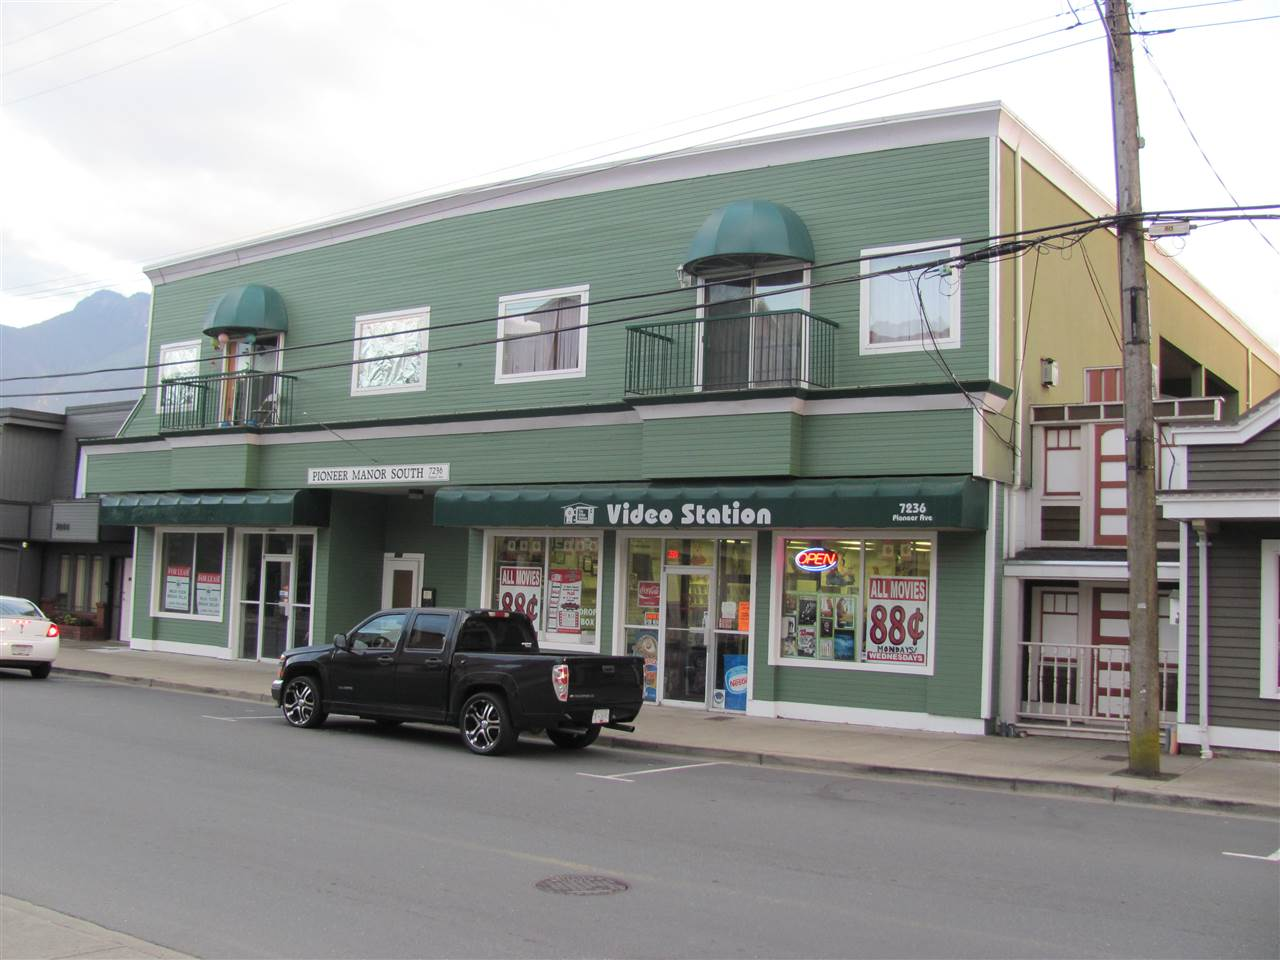 Available now is 1,035 sq. ft. on Pioneer Avenue in beautiful Agassiz, BC. Currently occupied by a computer store, would be an excellent space for an office, retail business or coffee shop. This space comes with one bathroom, a storage room and an office with a lot of open space for your own vision.